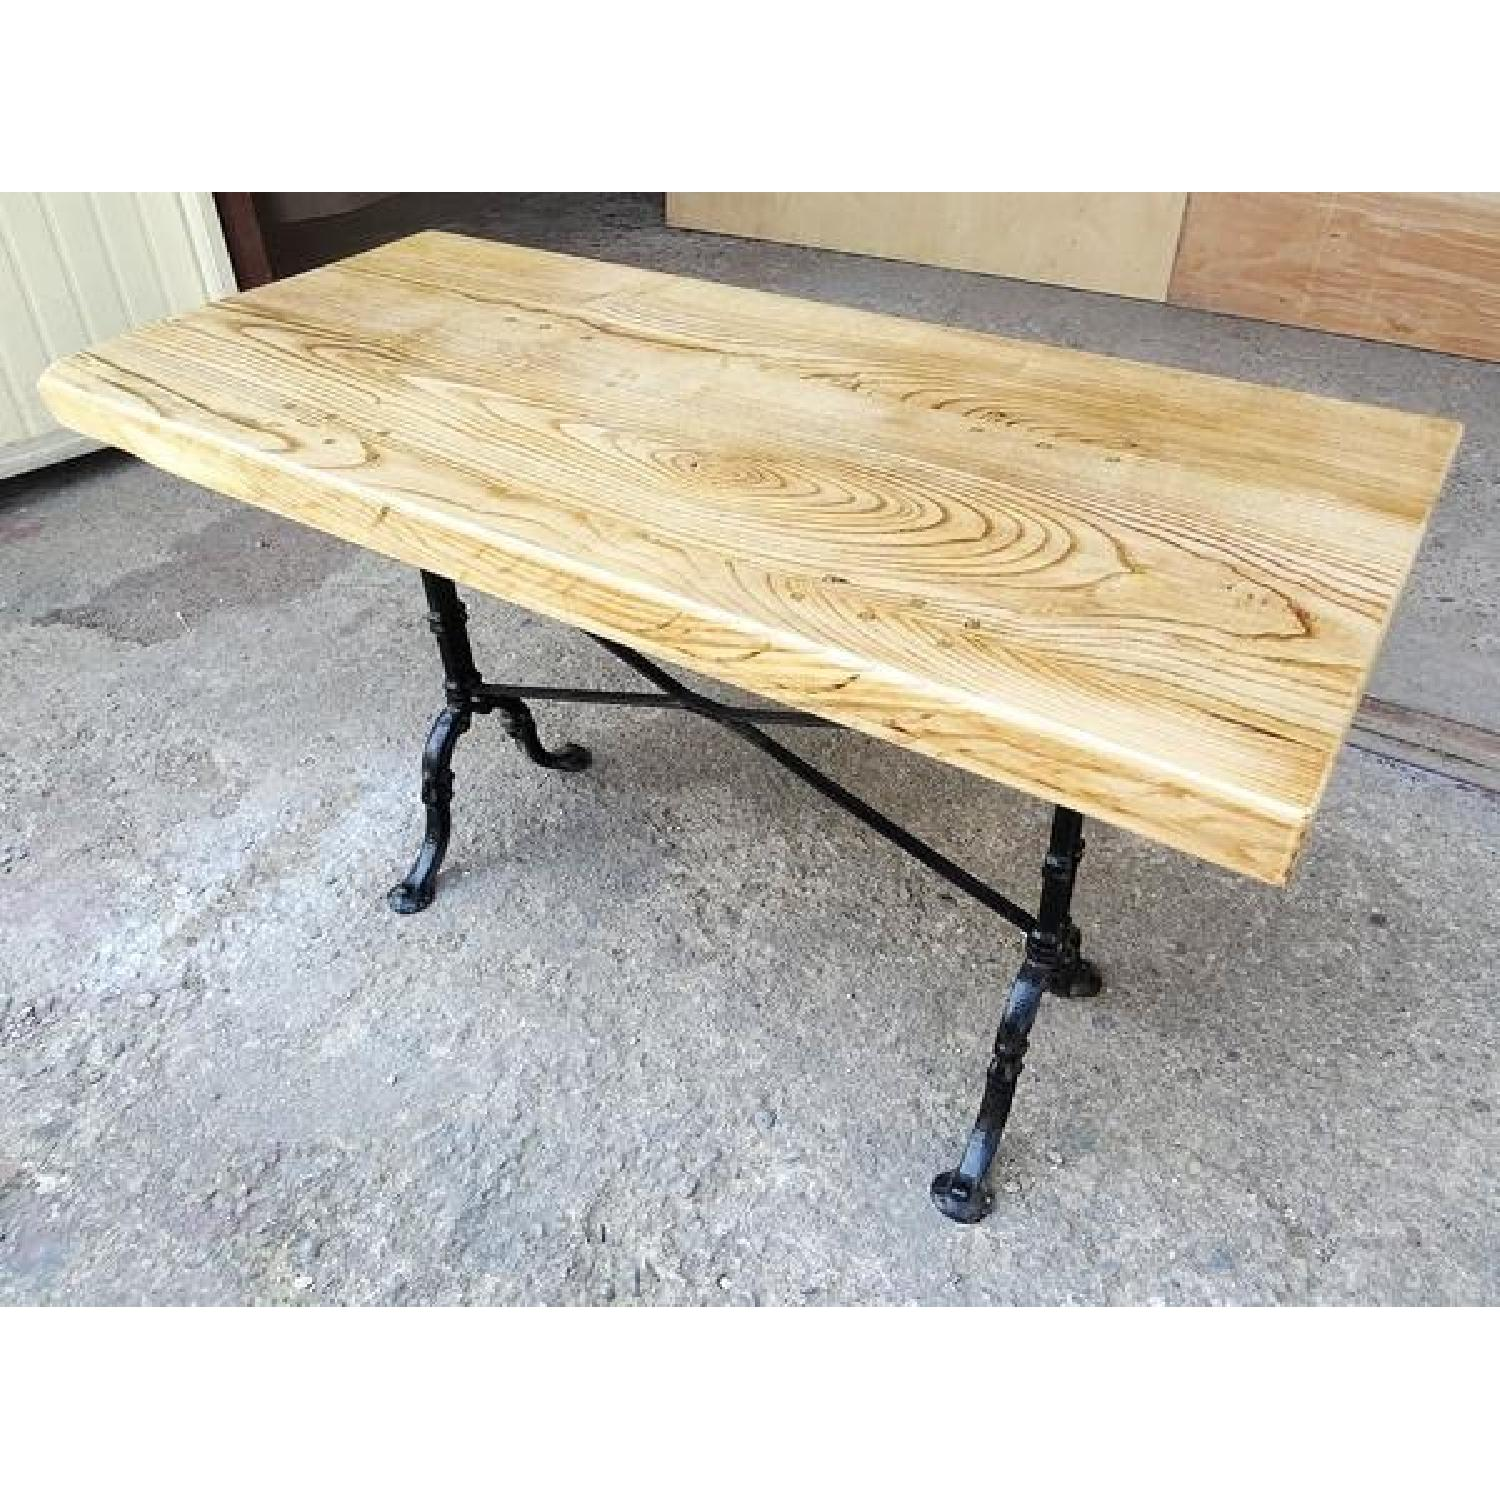 Vintage Handcrafted Reclaimed Pine Industrial Dining Table